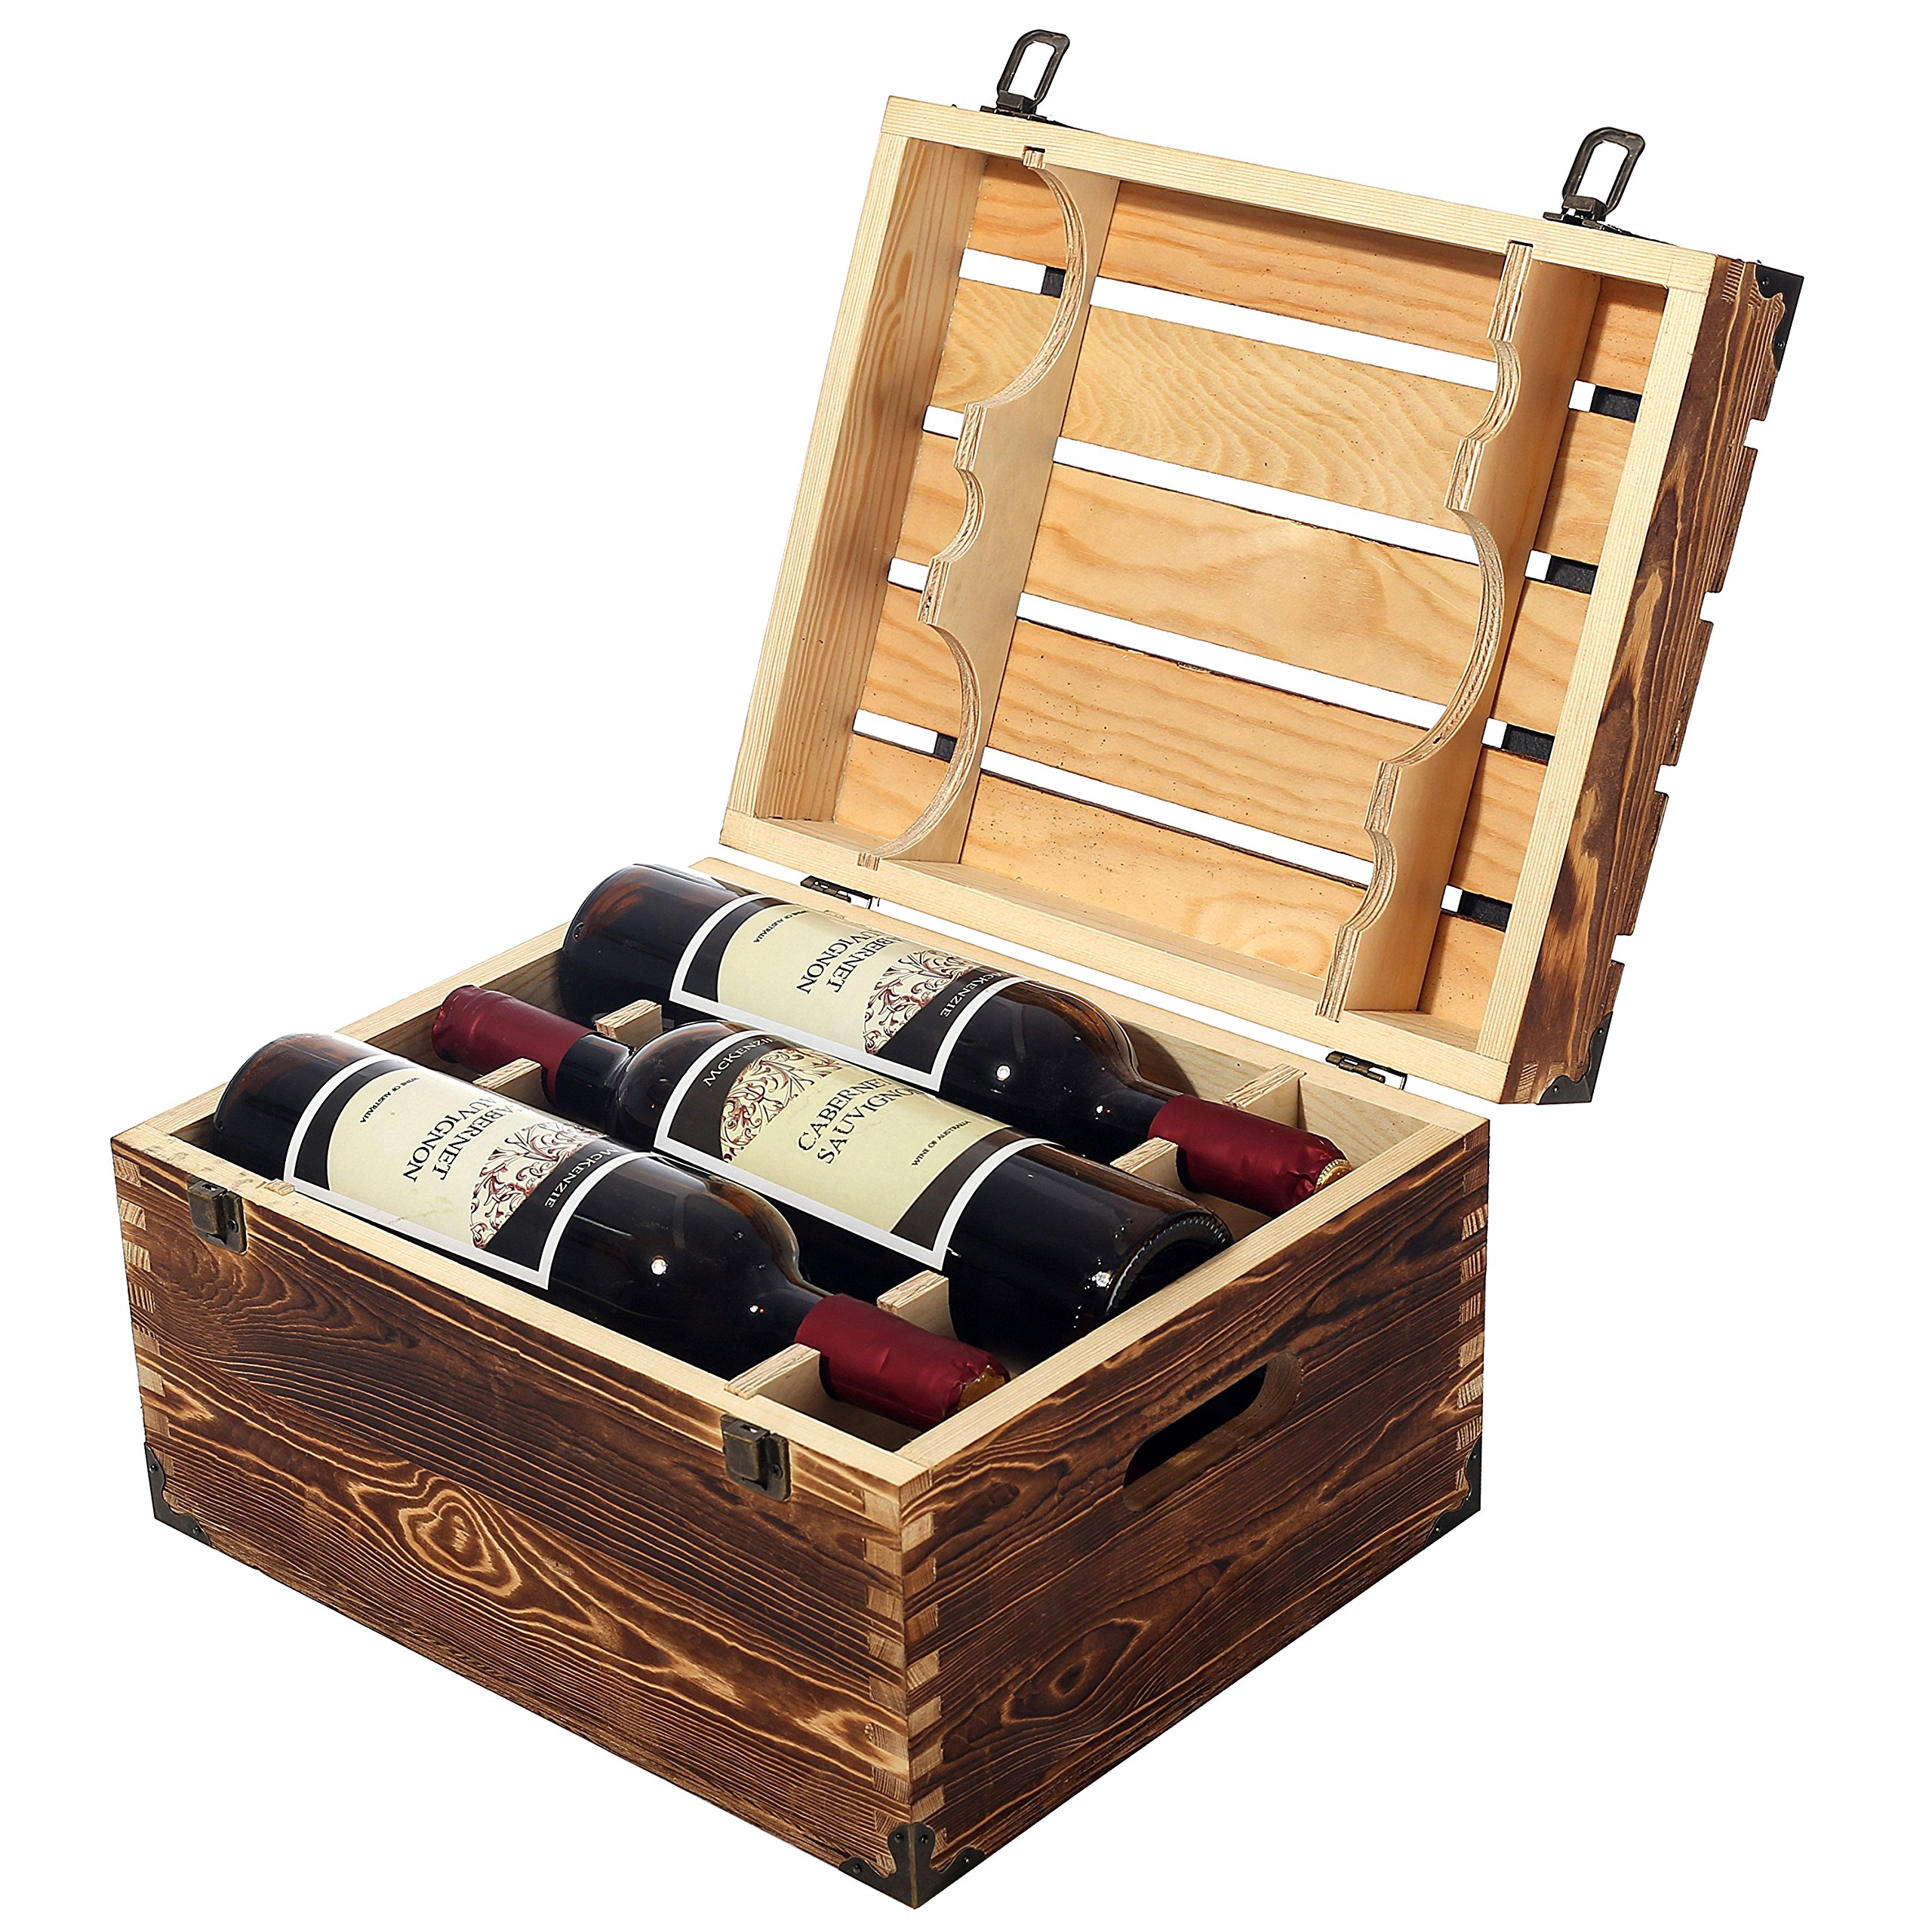 MyGift Wood 6 Wine Bottle Case, Rustic Storage Box with Handles and Lid, Brown by MyGift (Image #3)